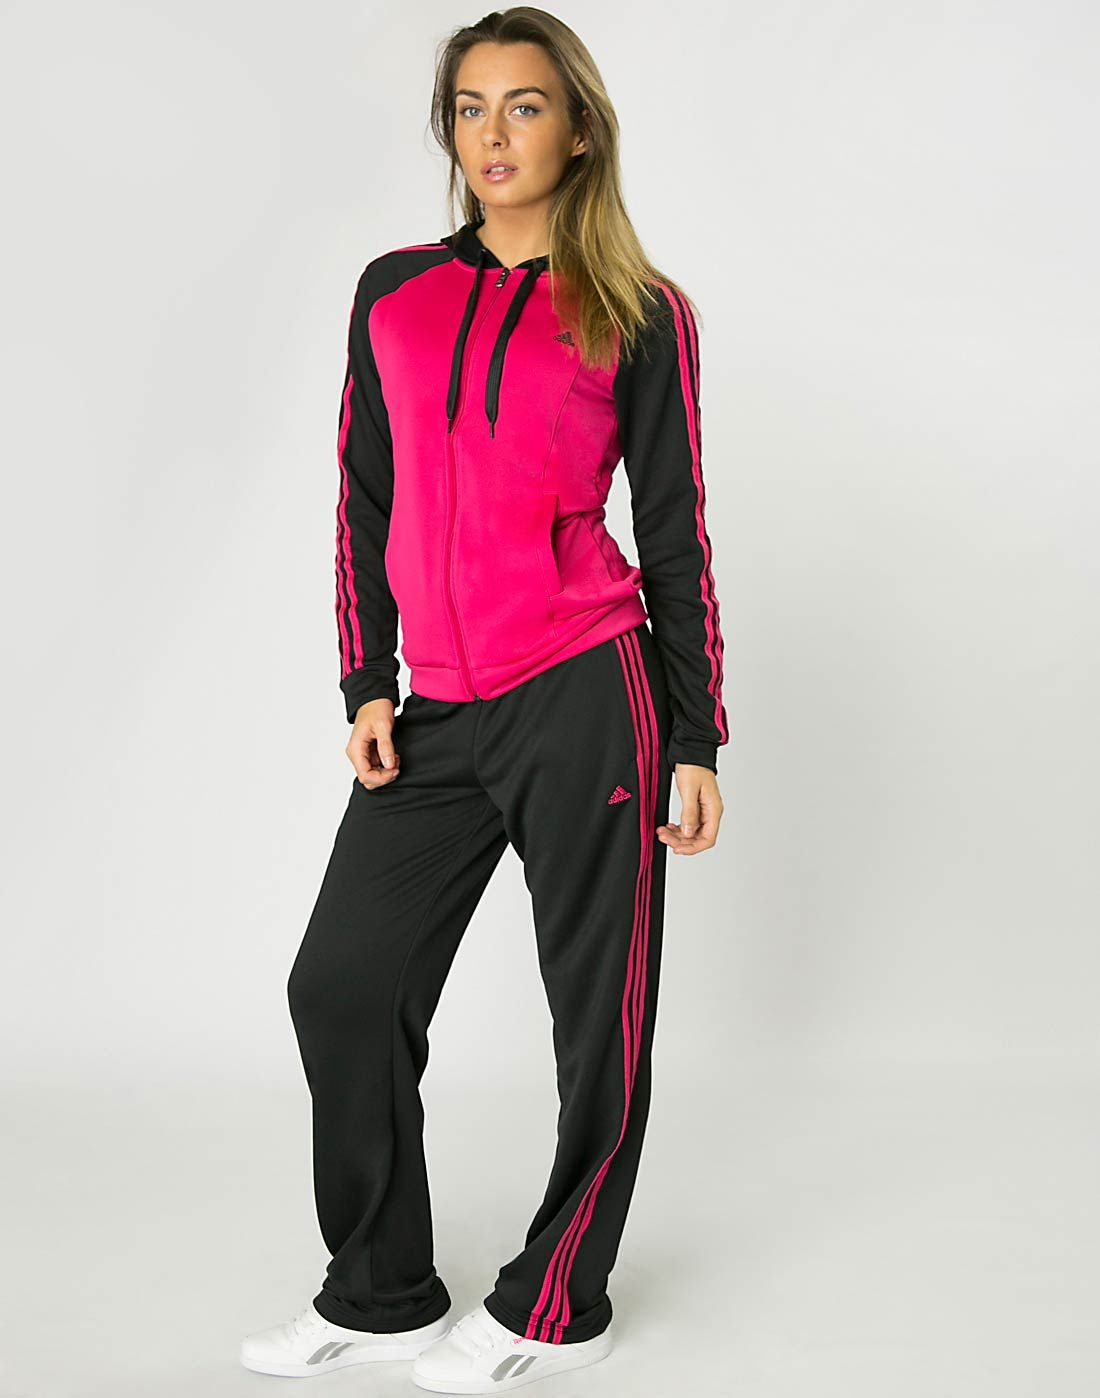 adidas Womens Young Knit Suit | Adidas women, Fashion, Sport